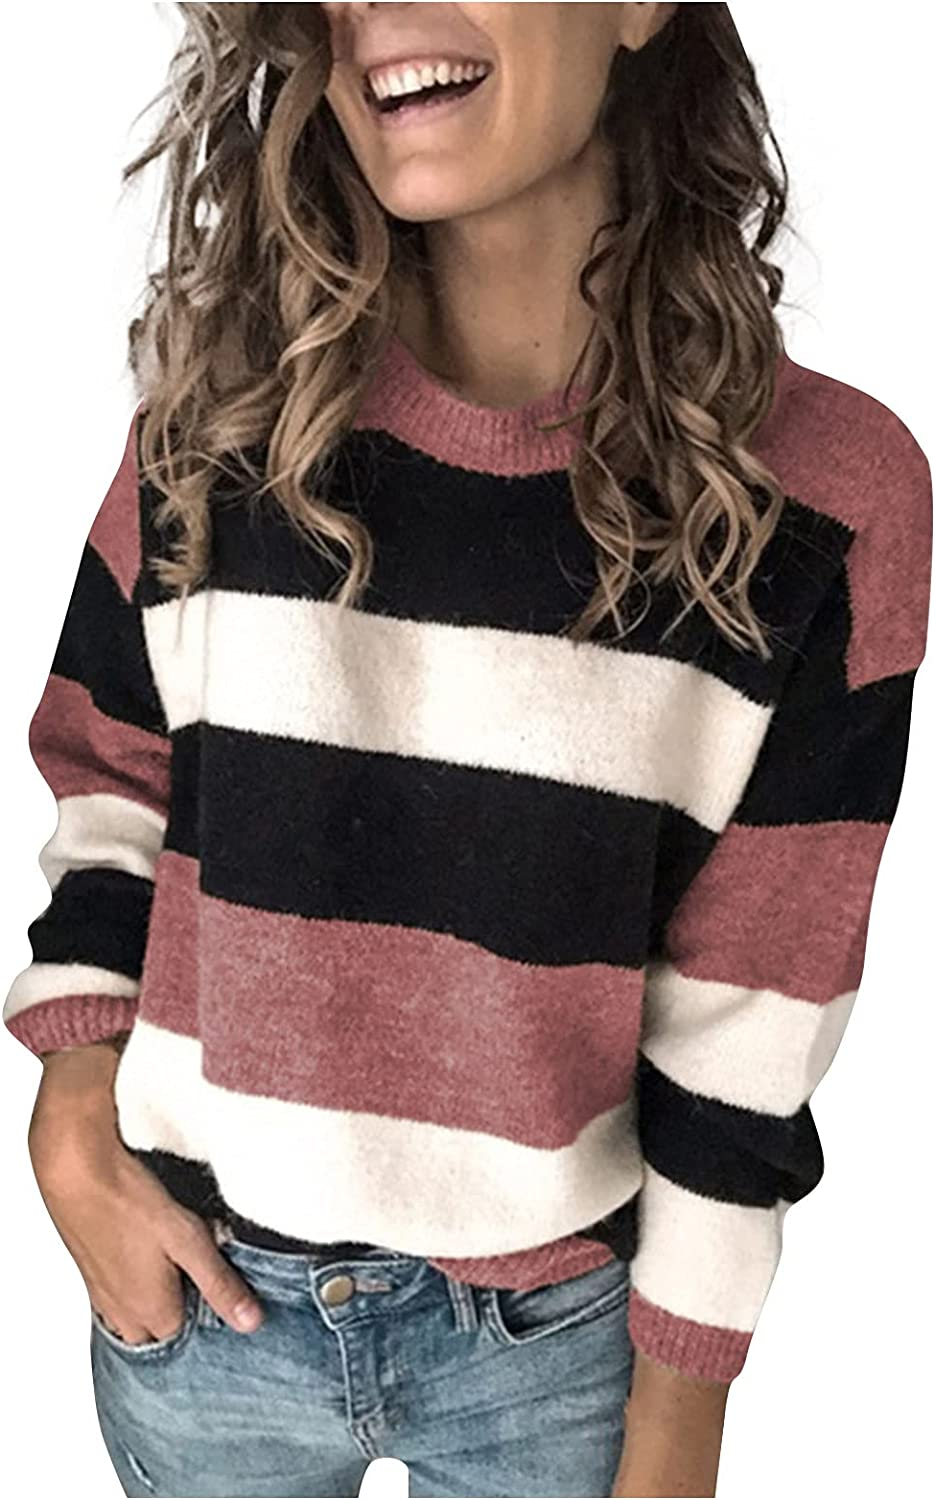 Sweaters for Women Casual Cable Knit Sweater Fashion Loose Pullover Tops